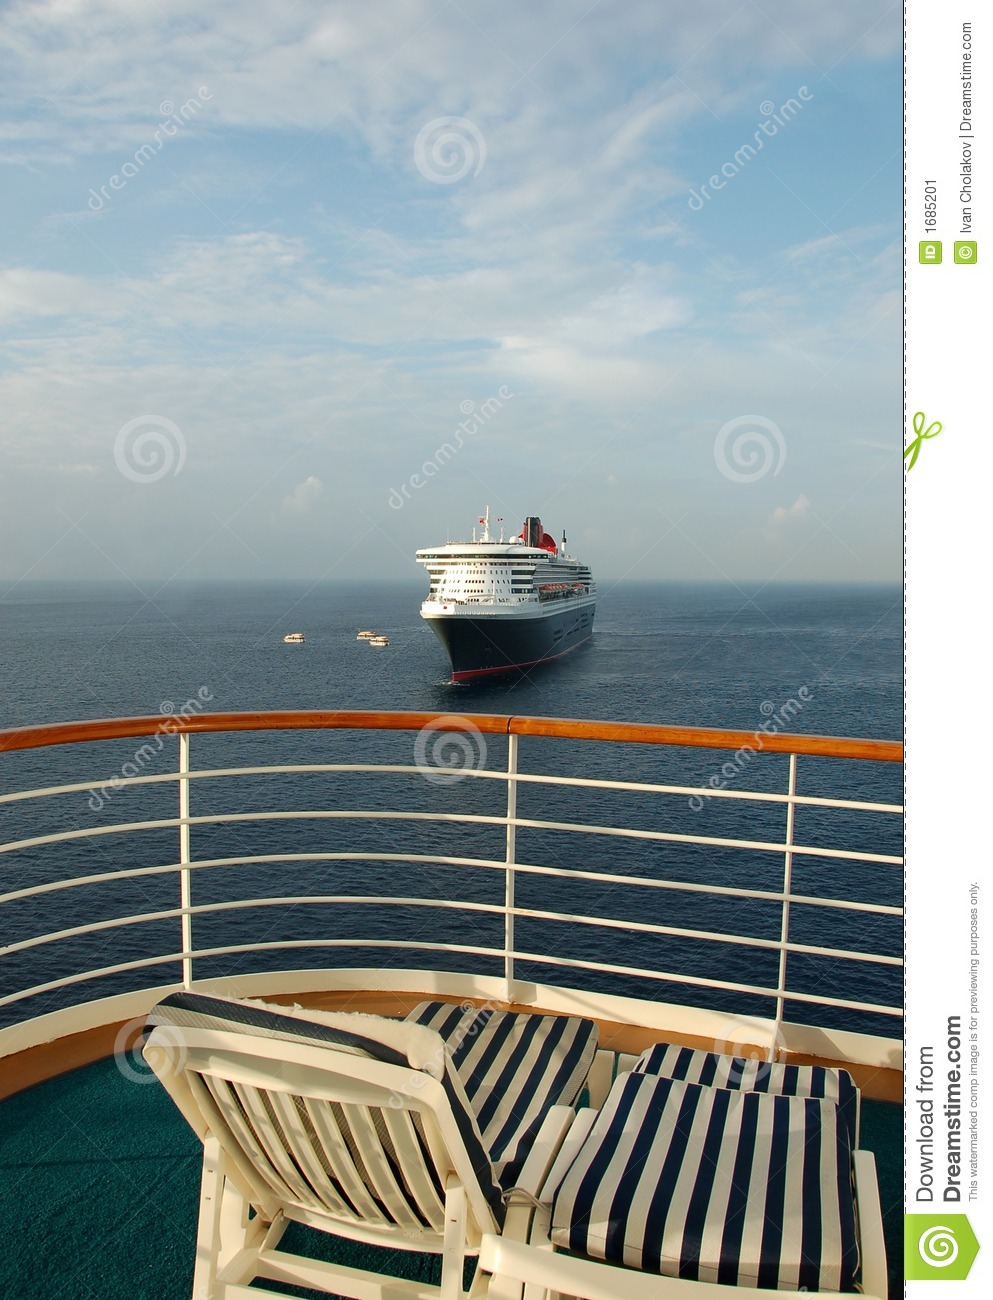 Relaxing cruise vacation